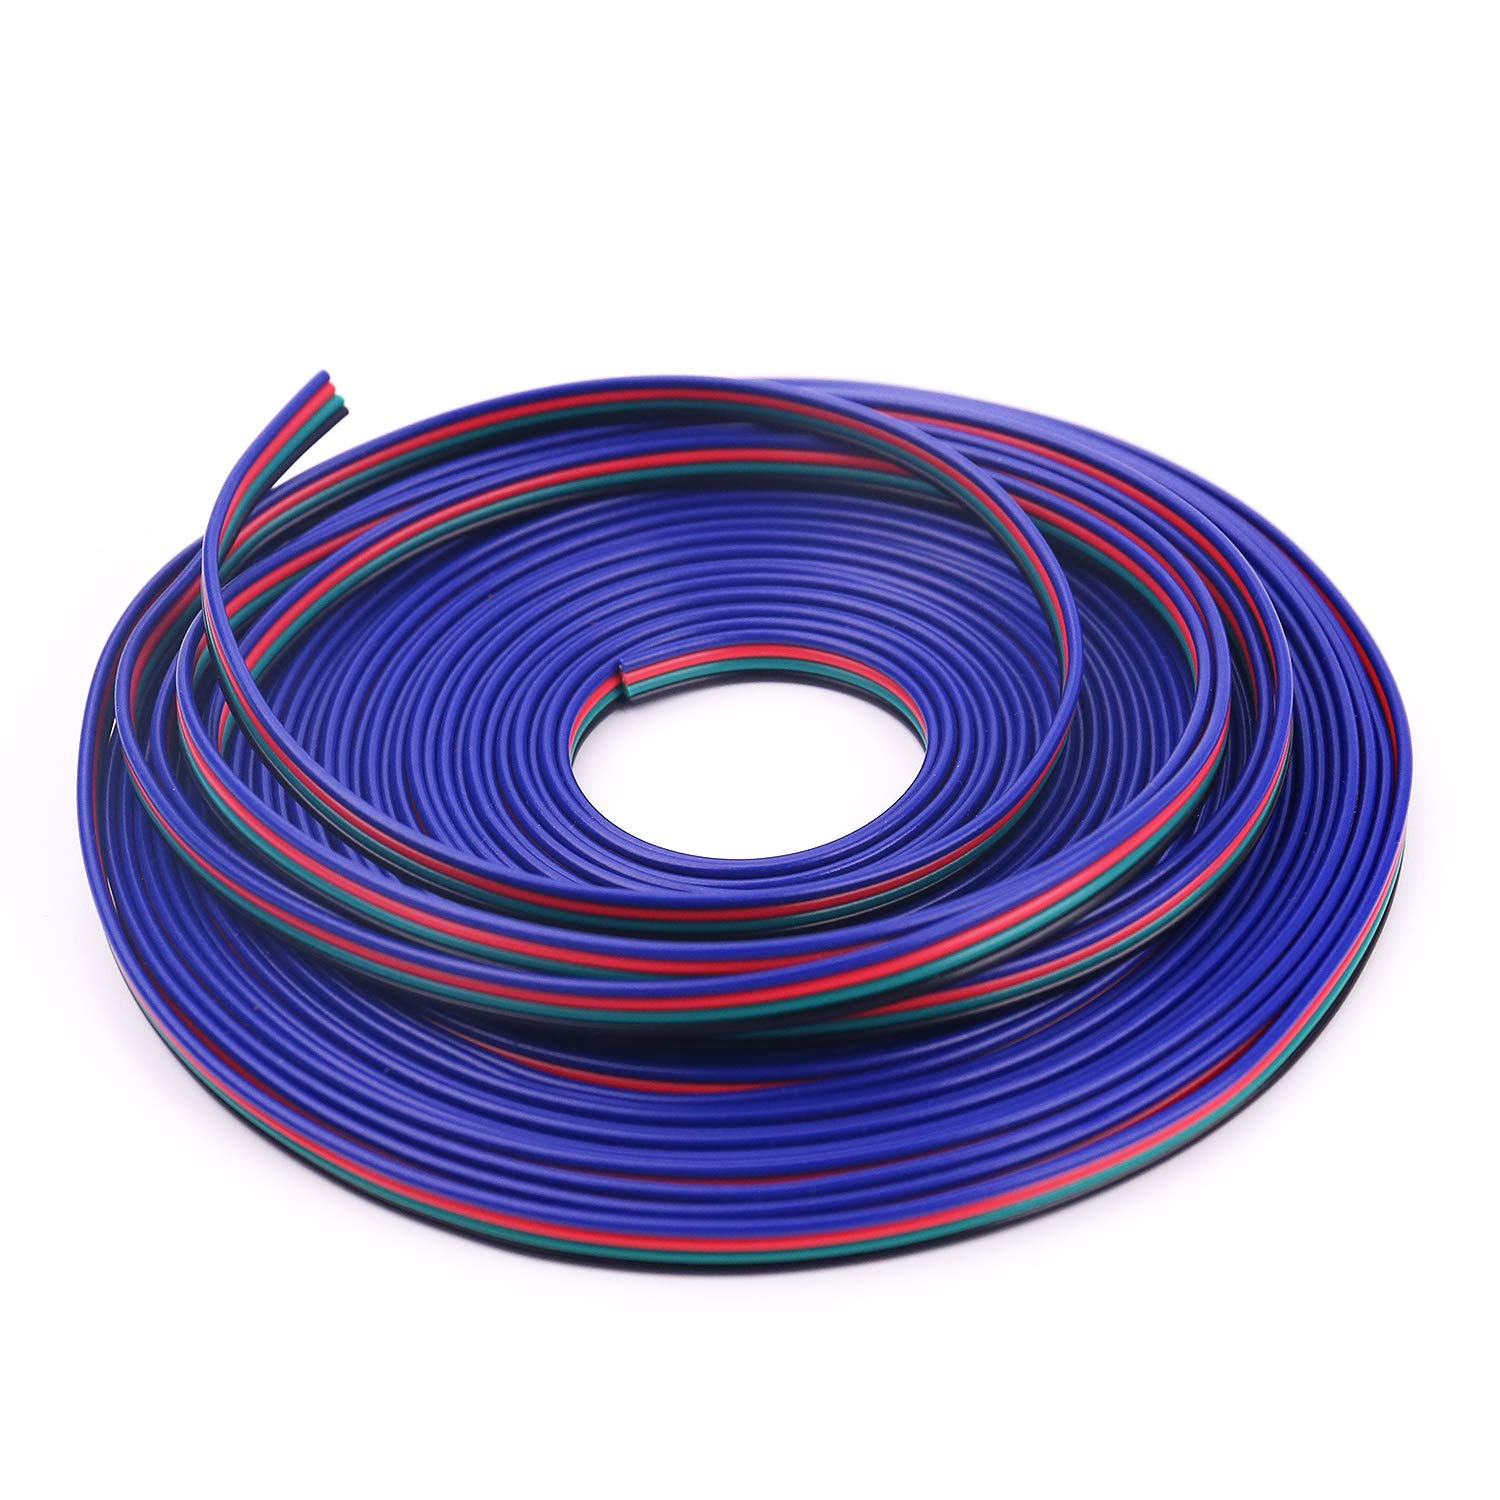 Icreating 100ft 4 Pin Rgb Extension Cable Wire Cord For 5050 3528 Wiring Pigtail Technique Color Changing Flexible Led Strip Light